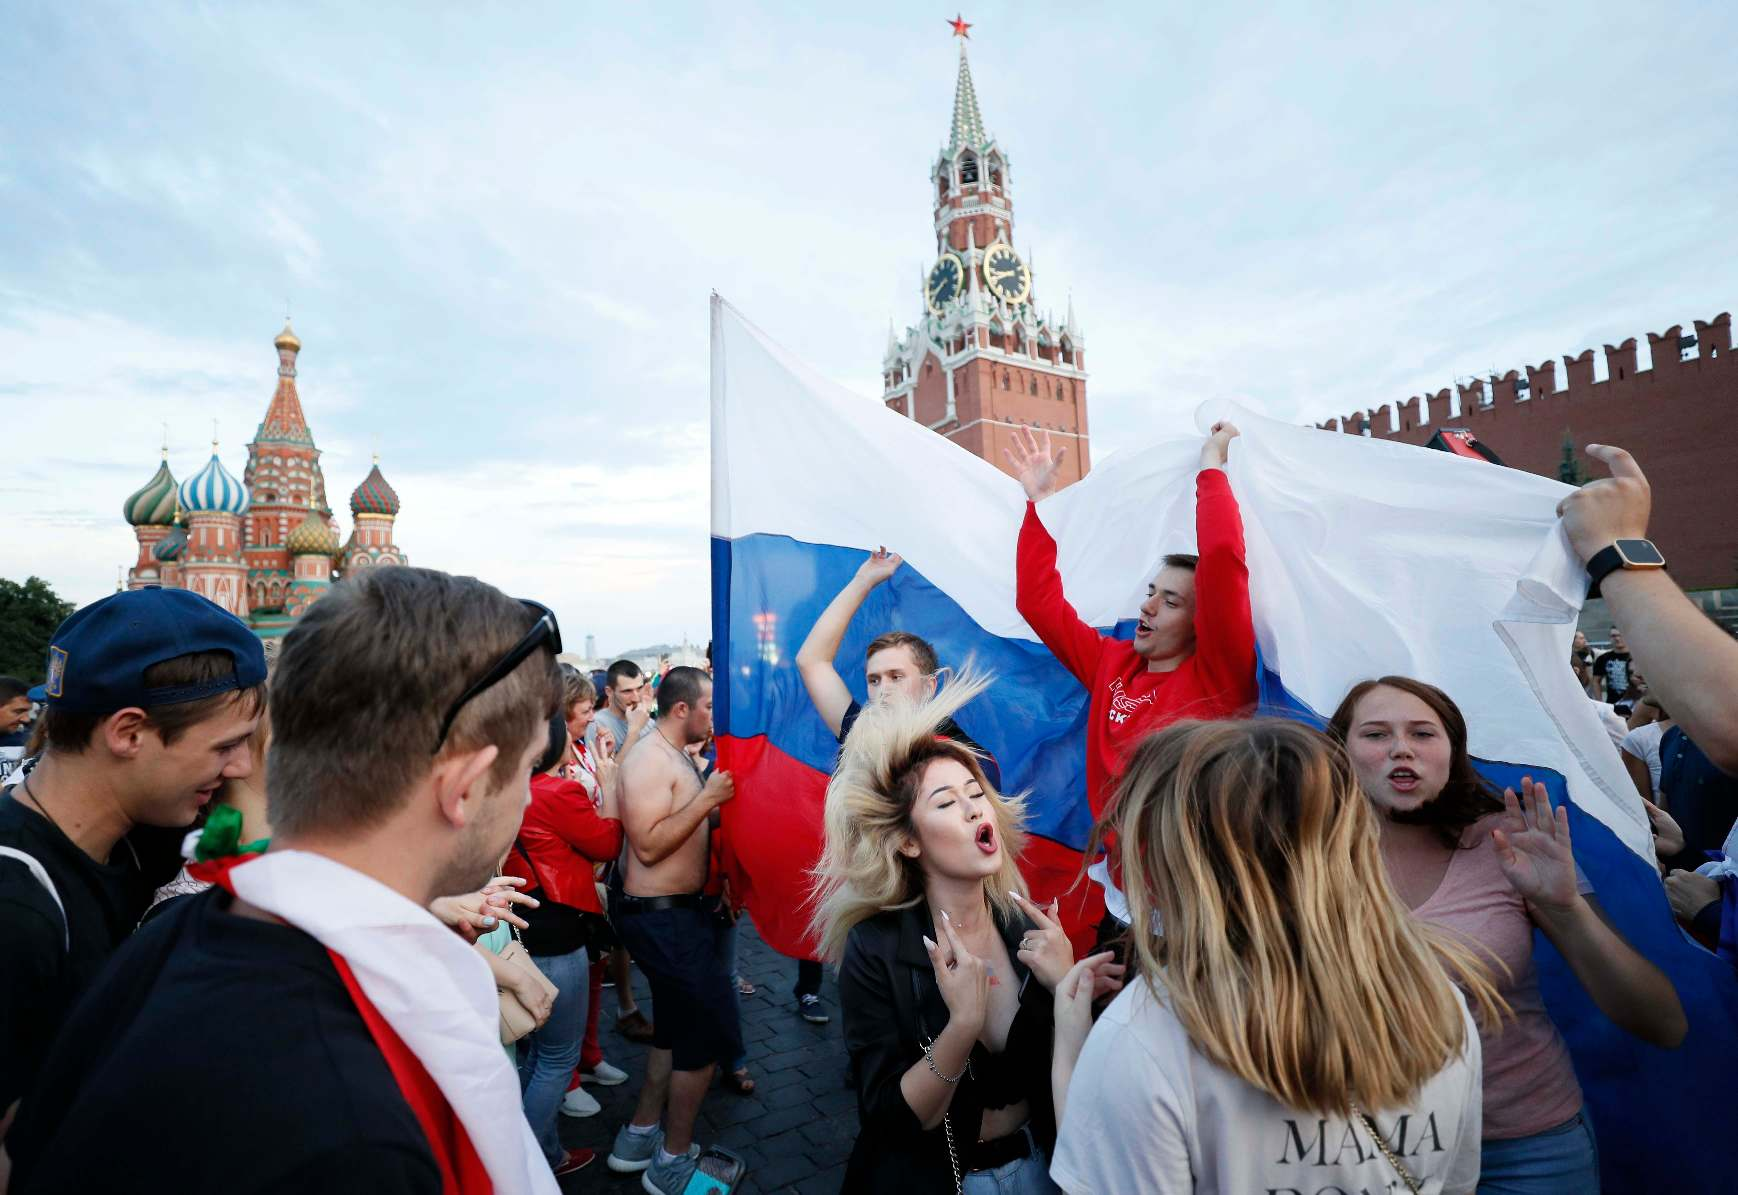 Soccer Football - World Cup - Round of 16 - Spain vs Russia - Moscow, Russia - July 1, 2018. Russian supporters celebrate the victory in Red Square. REUTERS/Gleb Garanich